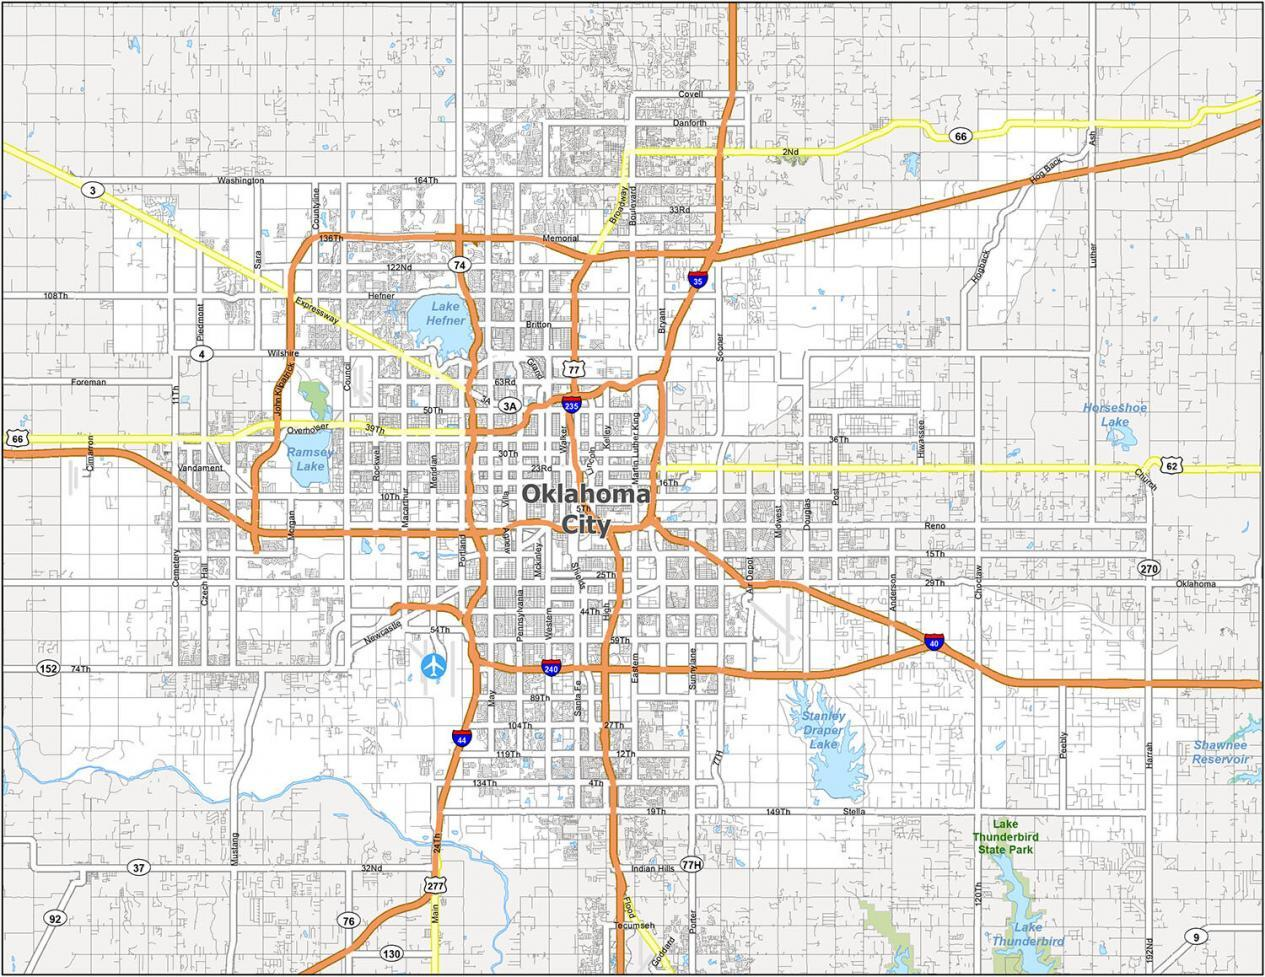 Oklahoma City Road Map